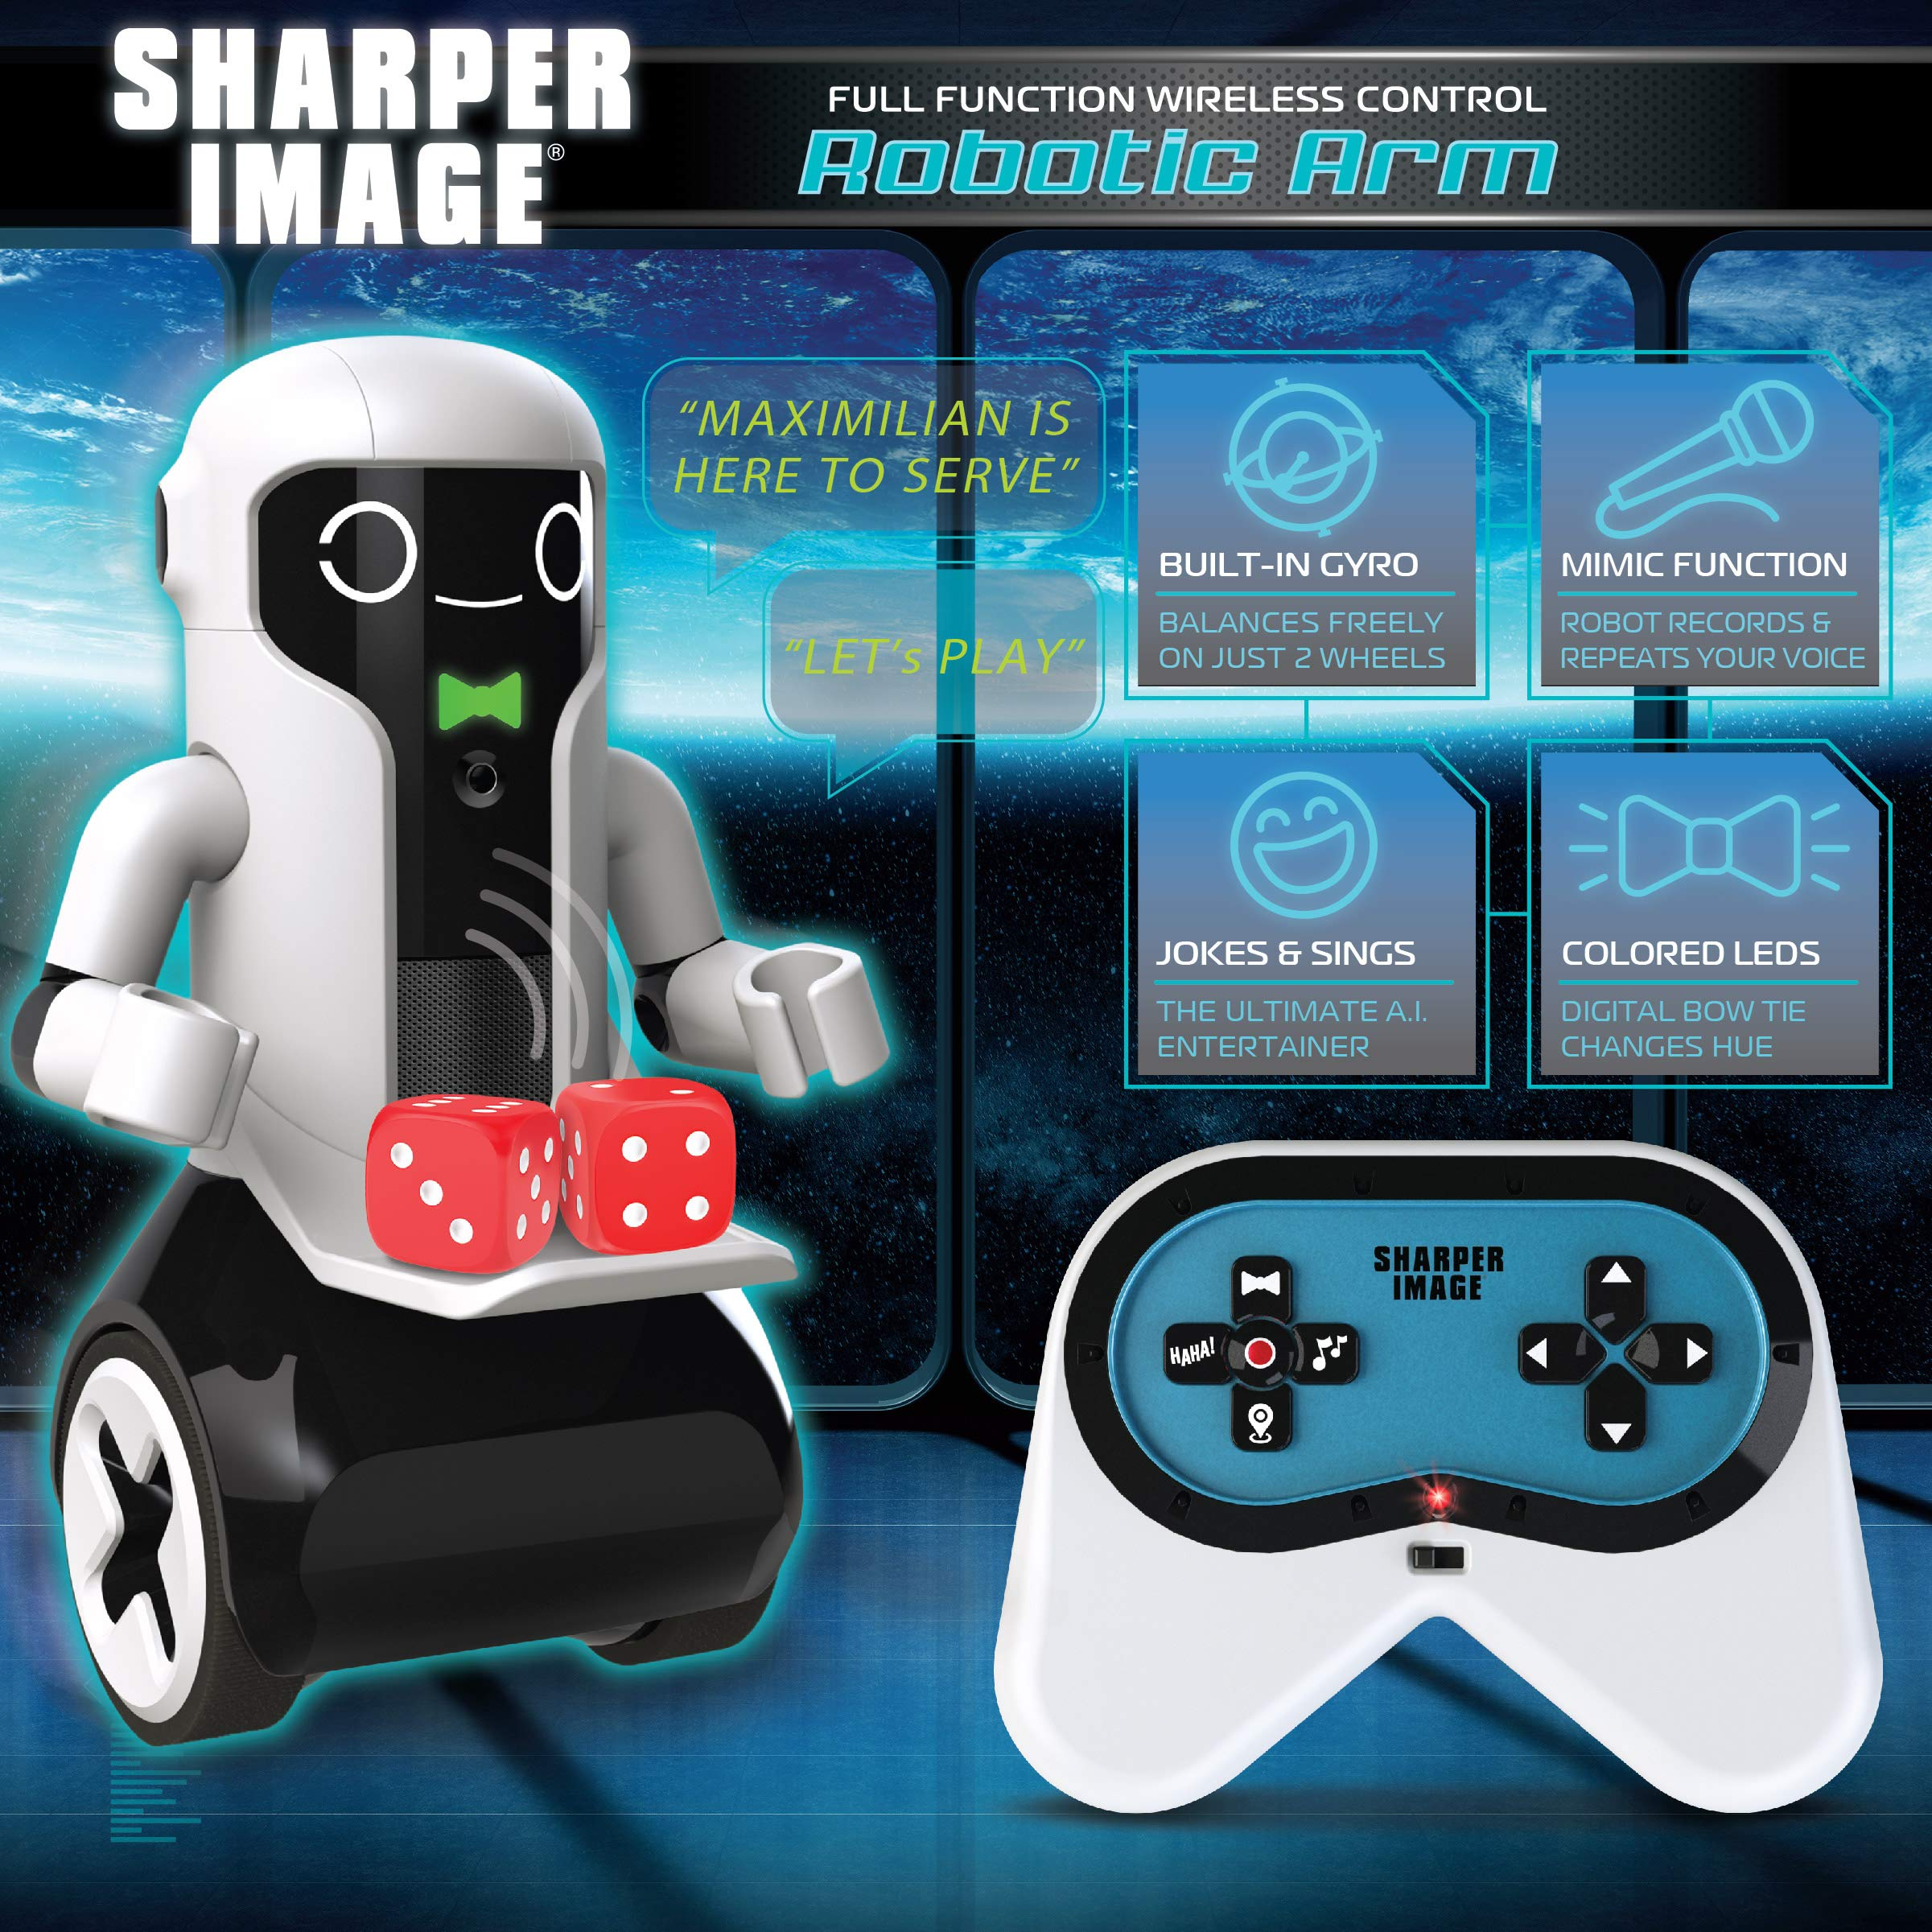 Sharper Image Maximilian The RC Butler Bot, Interactive Remote Control Robot with Speech, Singing, Audio Recording, Motion Detection, Color-Coded Emotional Responses by Sharper Image (Image #3)